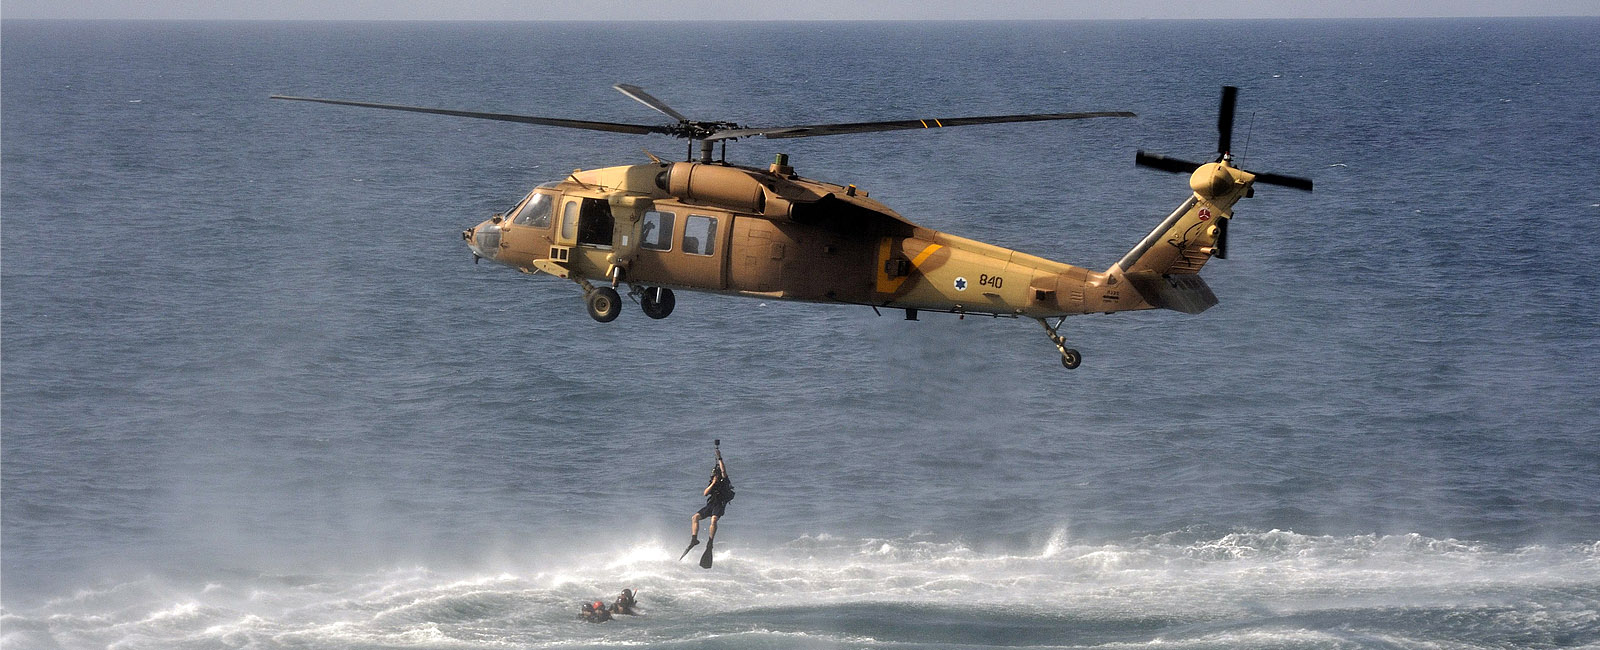 IDF heli-borne rescue operation